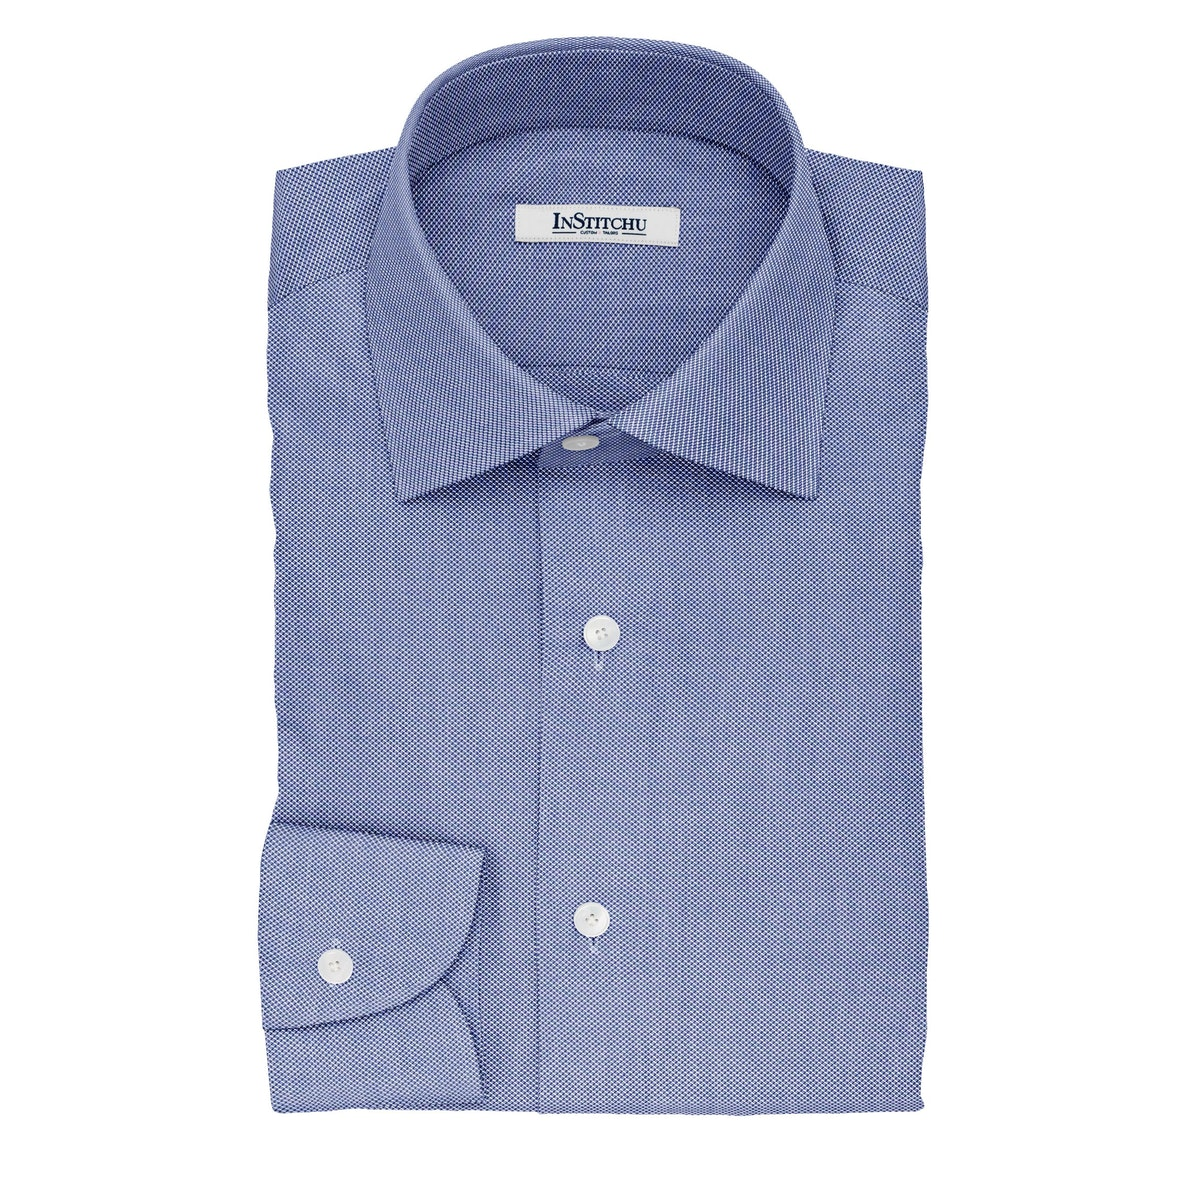 InStitchu Collection The Emerson Navy and White Dobby Cotton Shirt